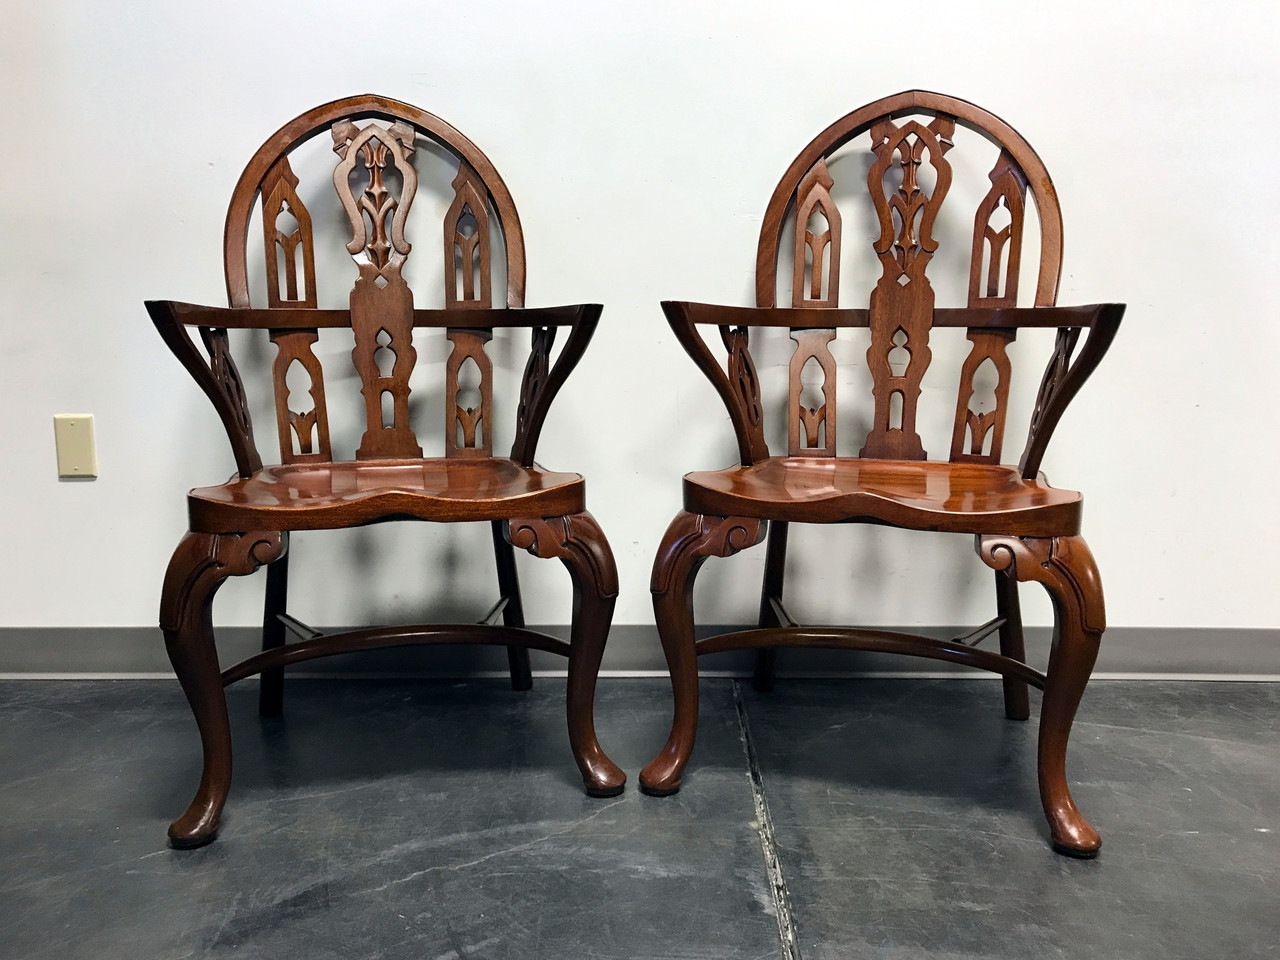 Genial SOLD OUT   MAITLAND SMITH Handmade Solid Mahogany Gothic Style Arm Chairs    Pair